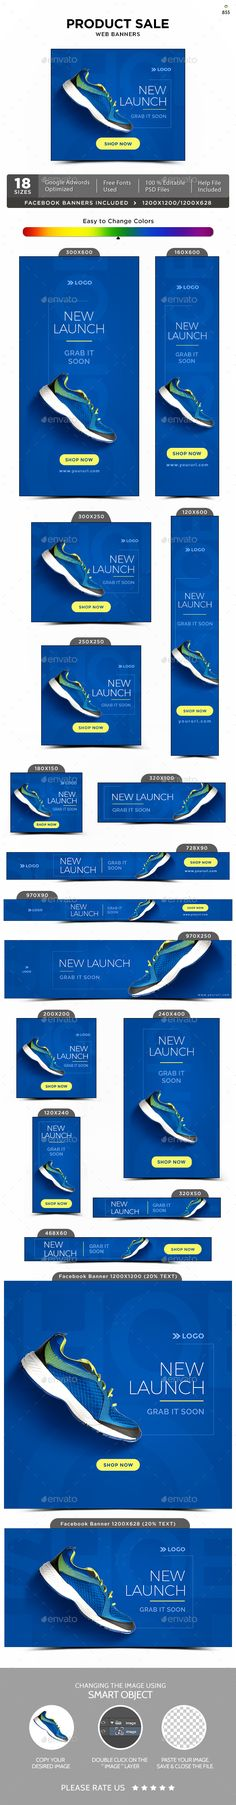 Product Sale Banners Template PSD #design #ad